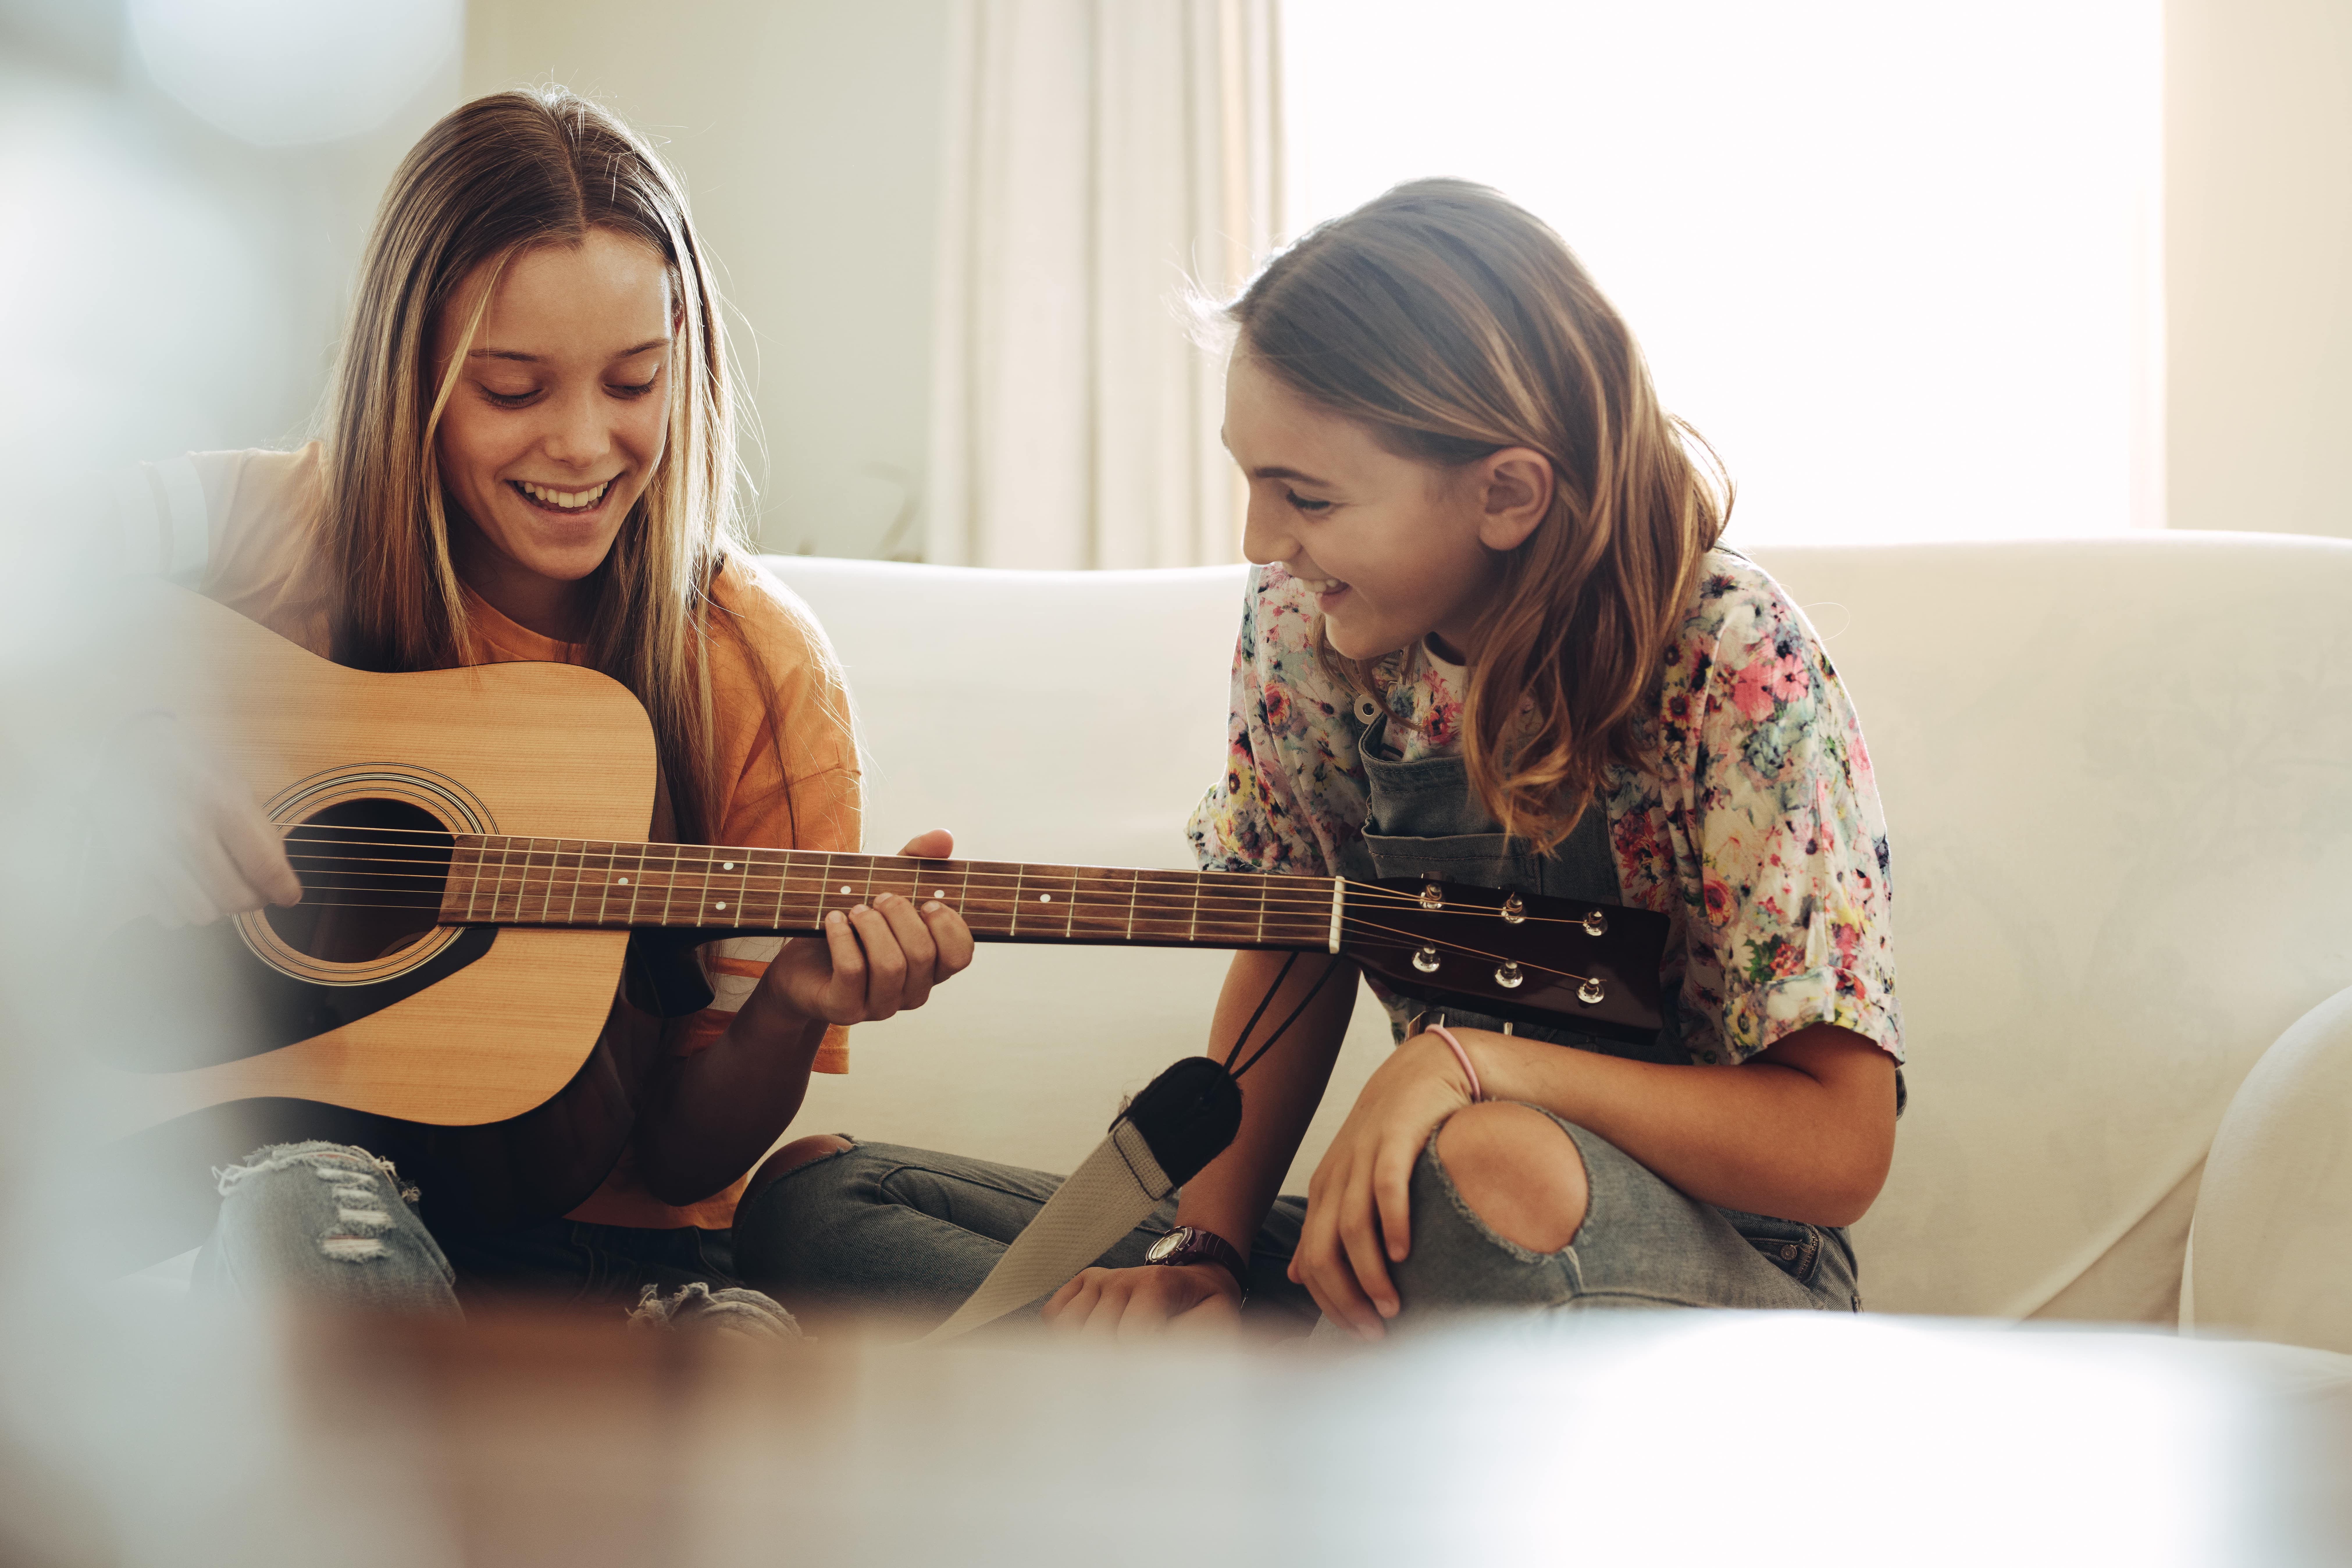 guitar and bass lessons near me for kids and adults in hendersonville nc